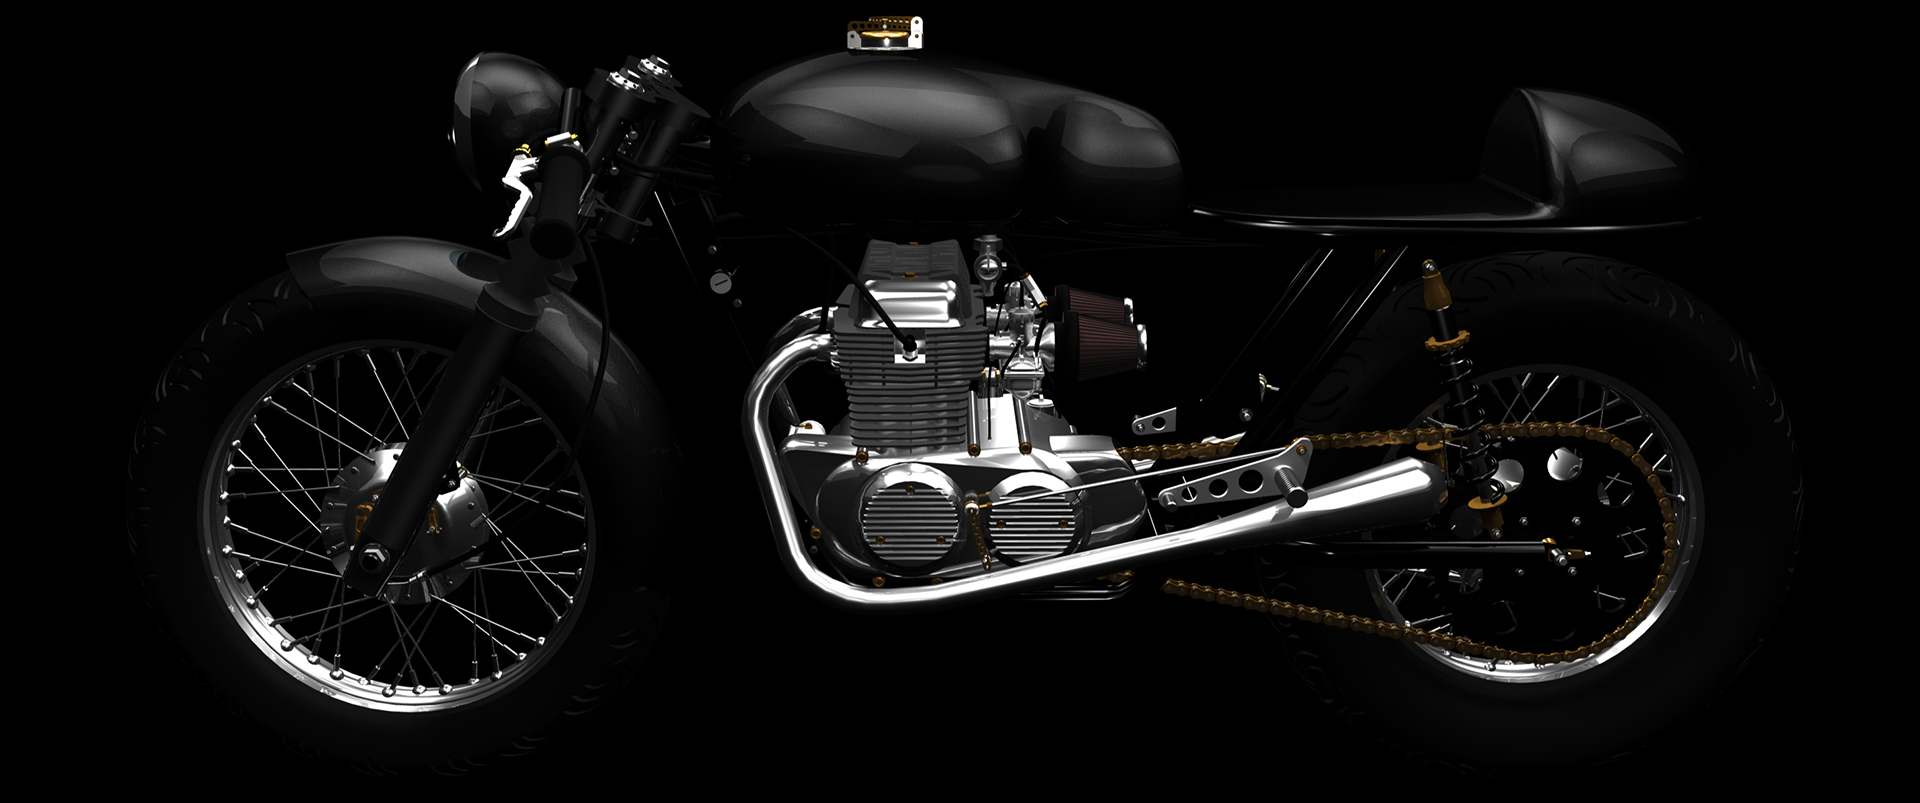 3d Motorcycle by Jon Apisa